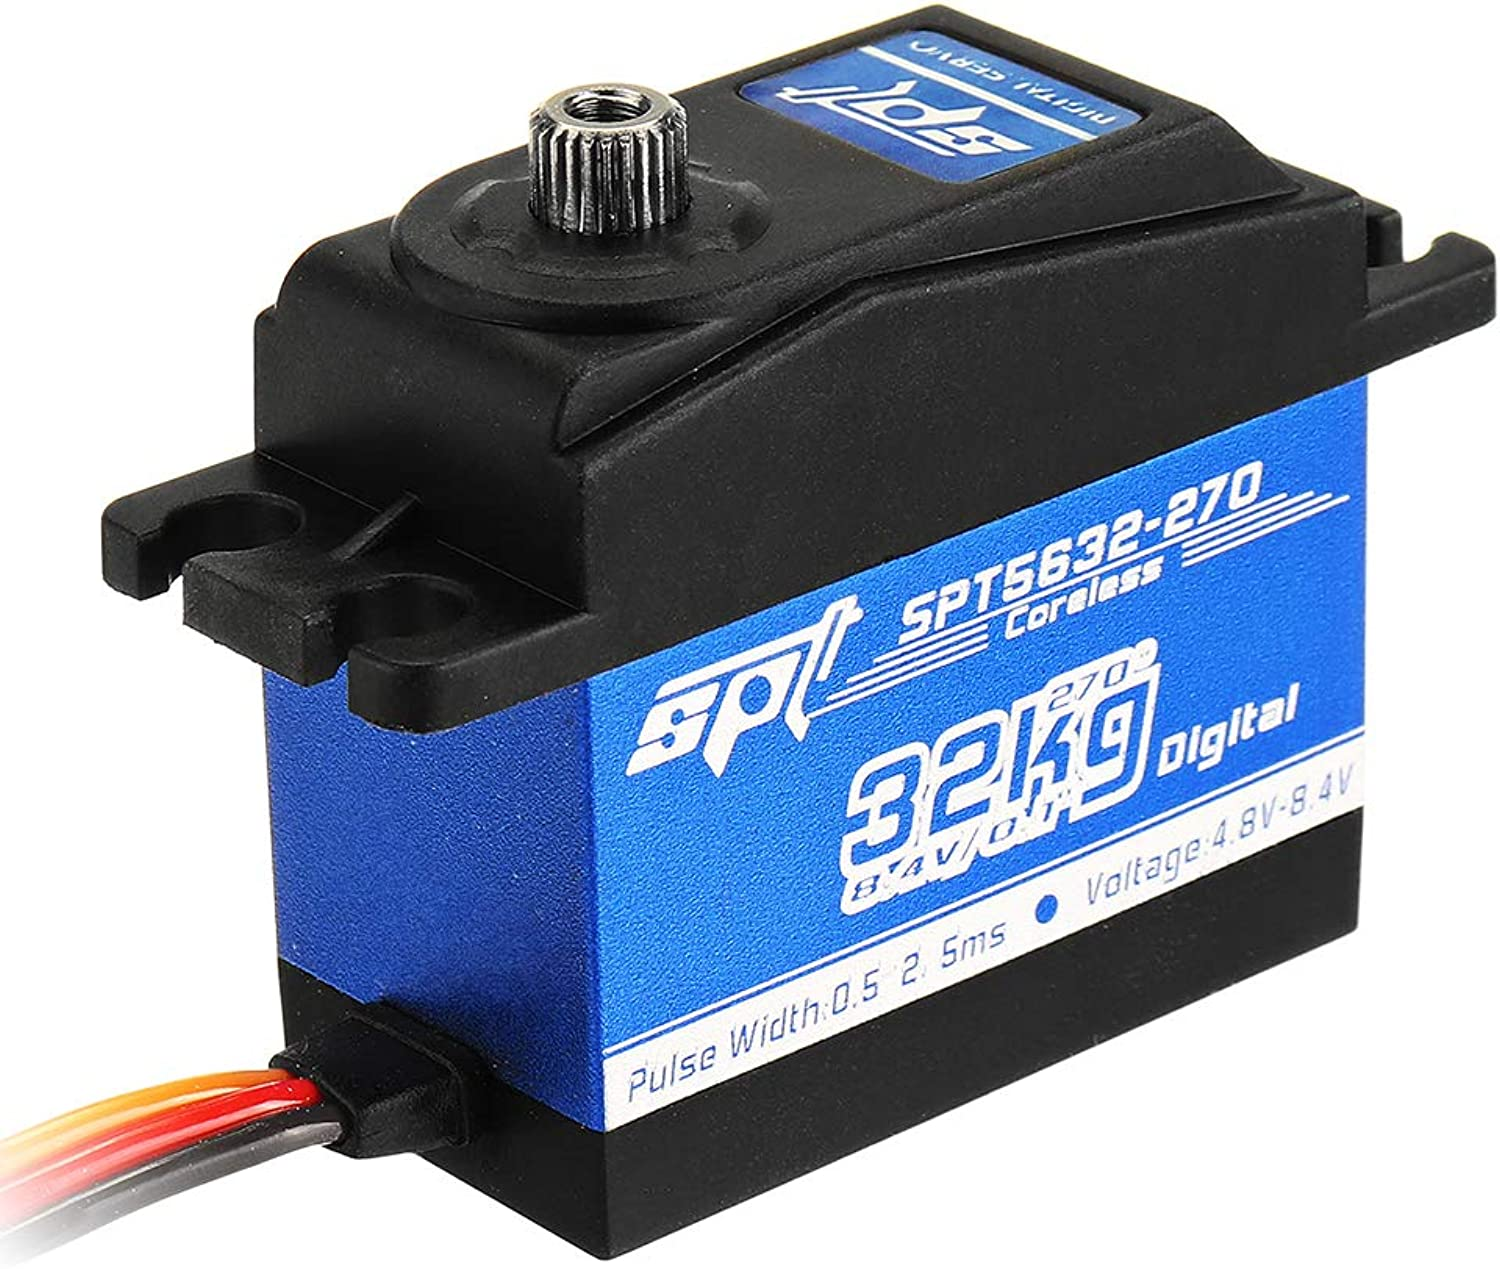 mejor servicio Desconocido Desconocido Desconocido Generic SPT Servo SPT5632-270 32KG Coreless Digital Servo Large Torque Metal Gear For RC Robot  Descuento del 70% barato